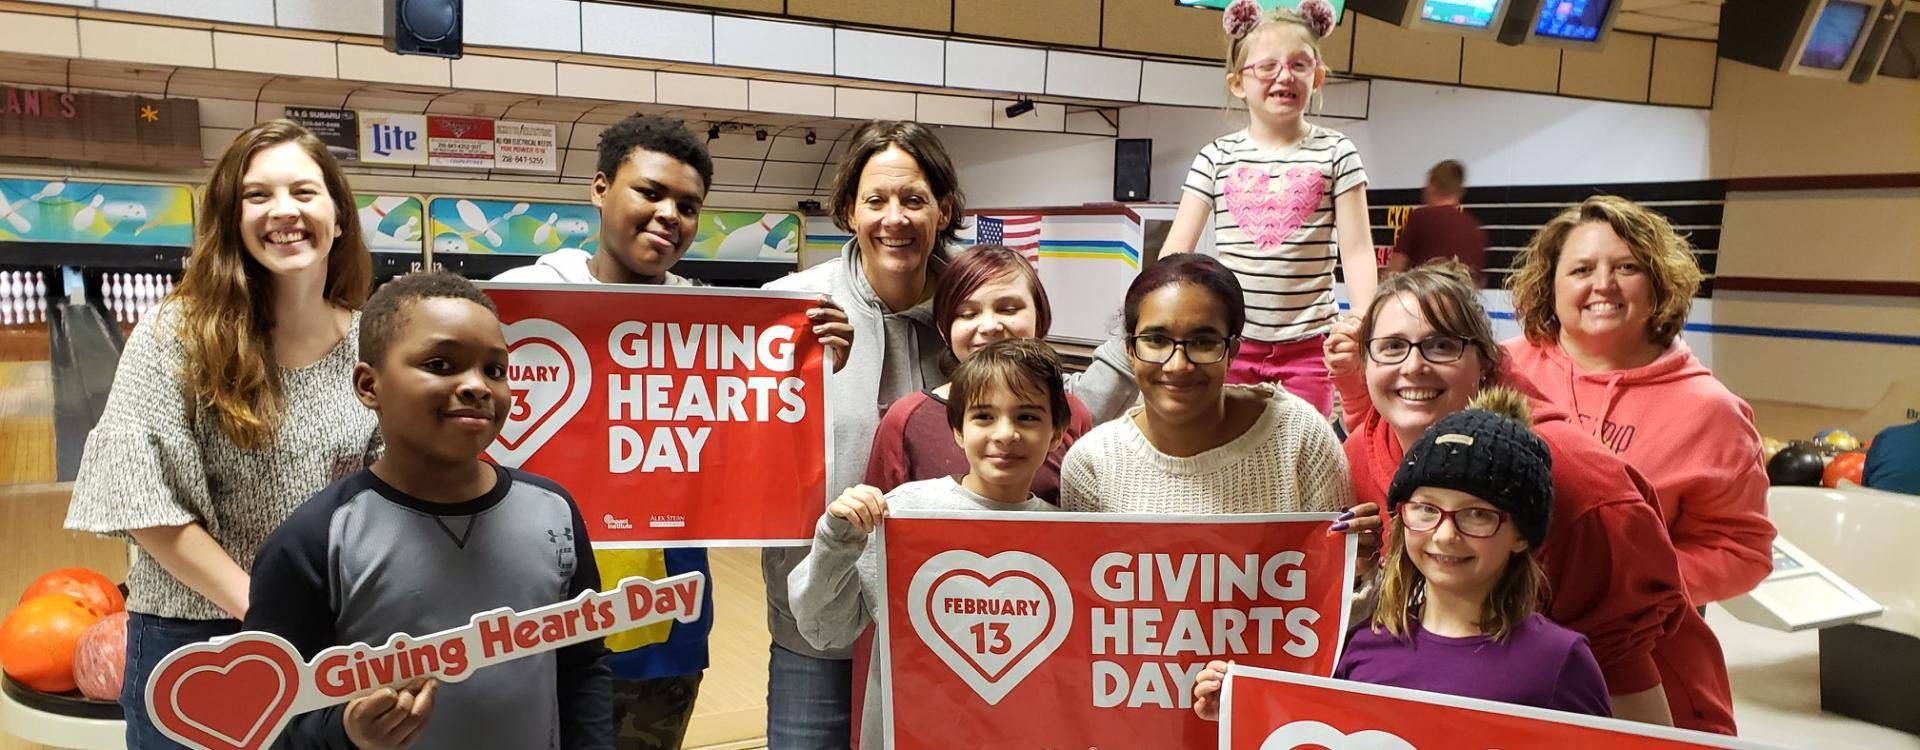 giving hearts day people at bowling alley